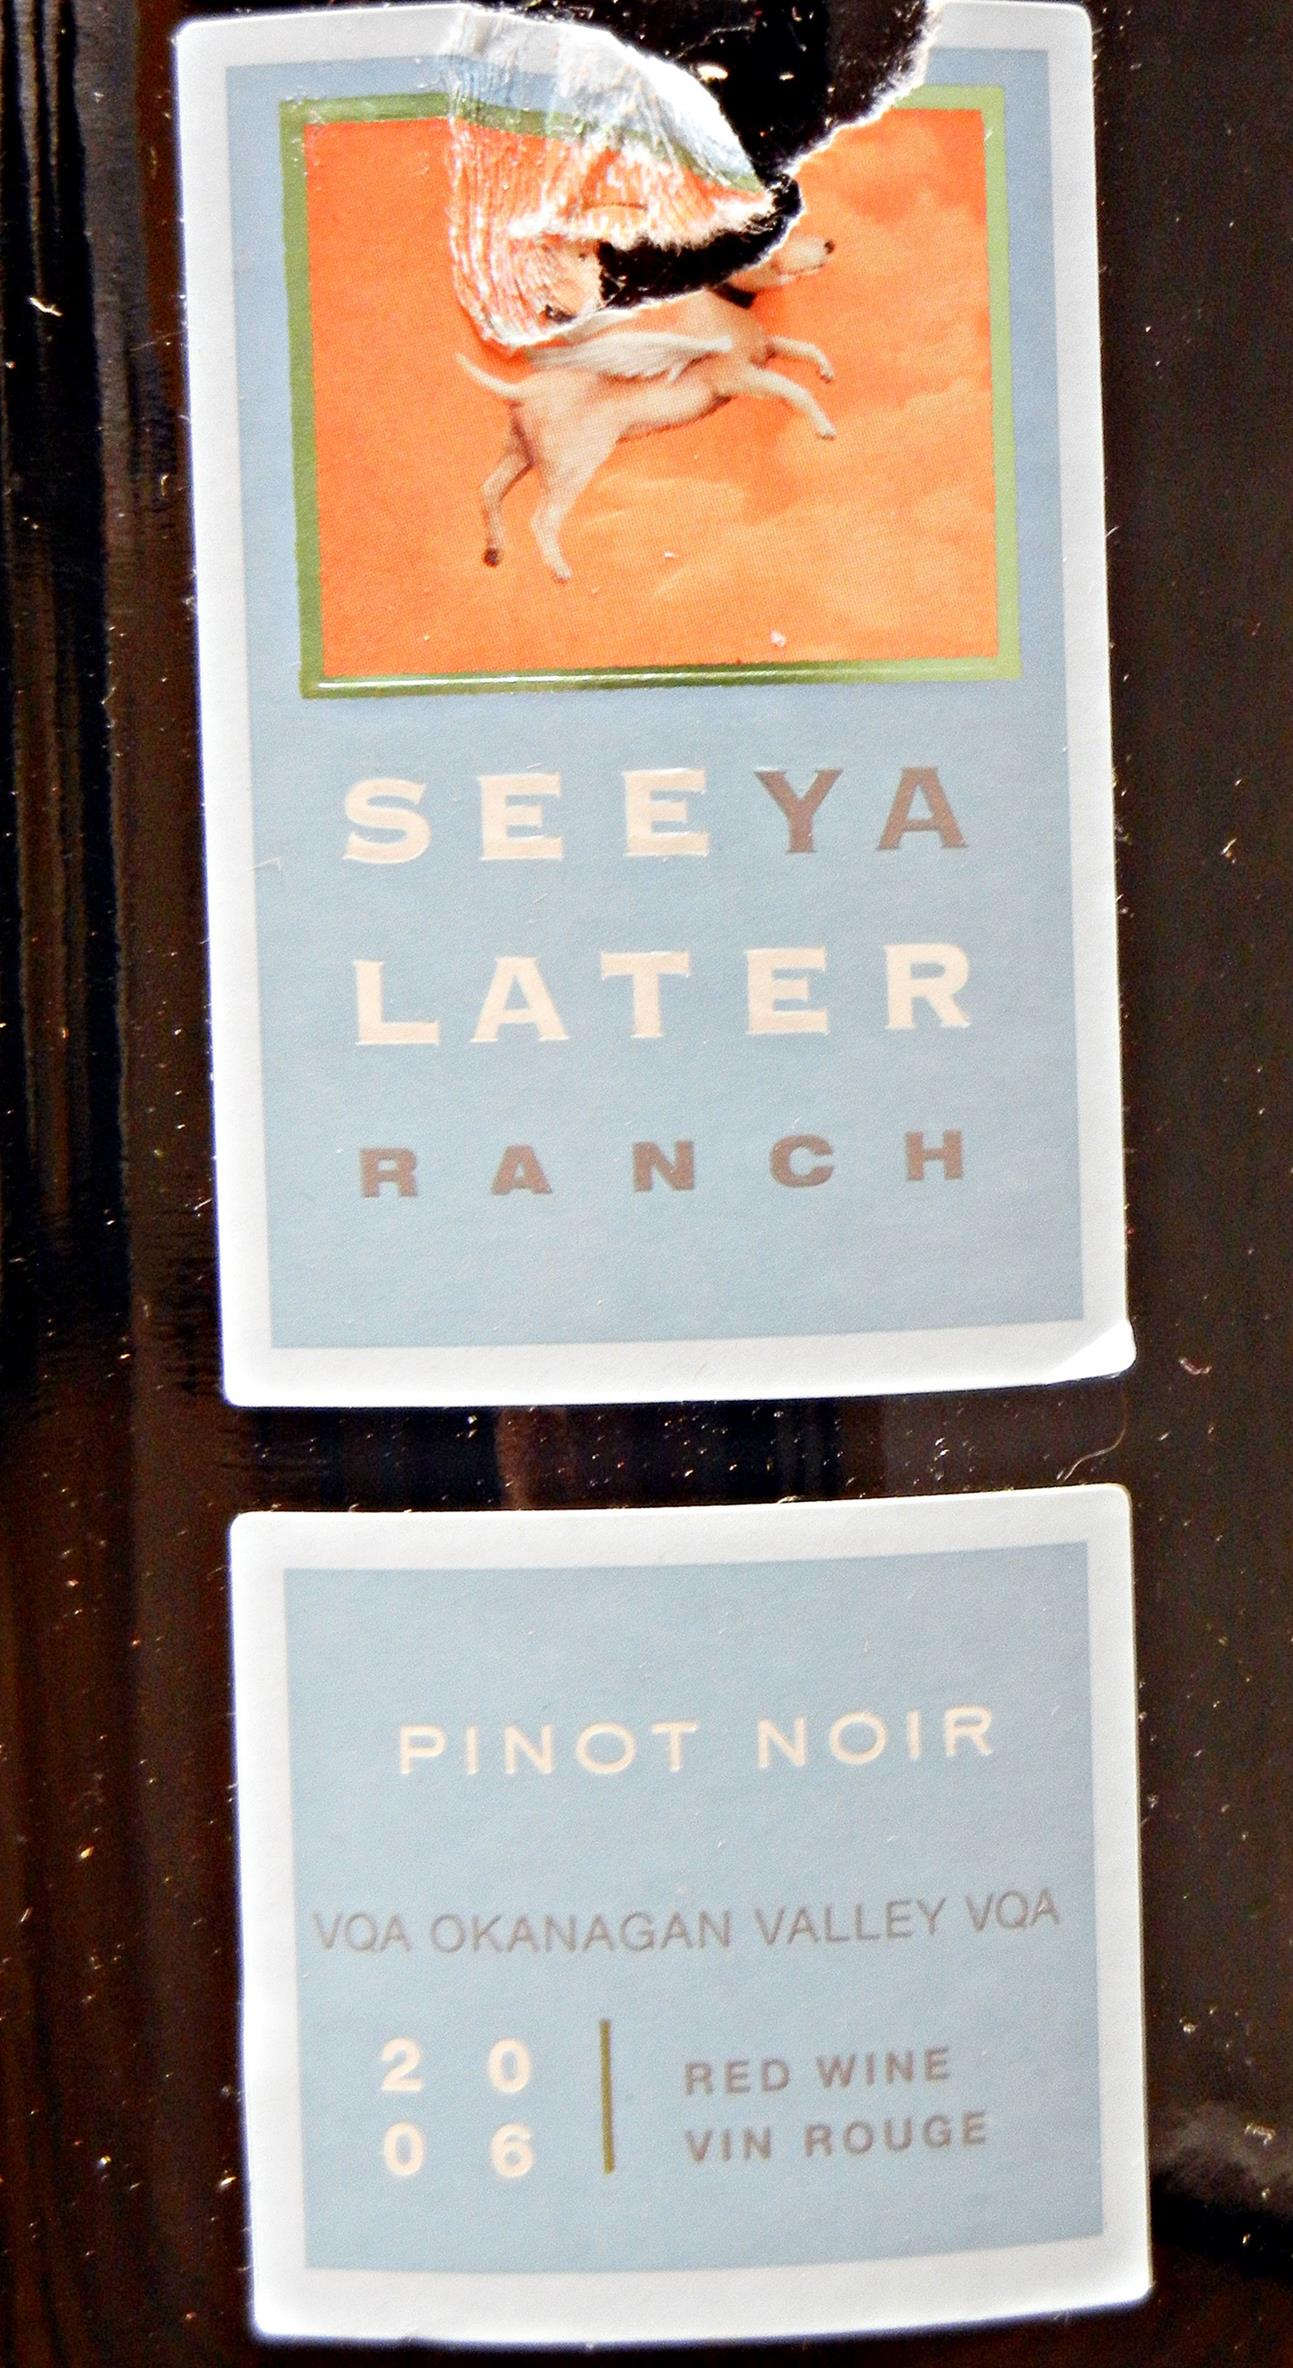 See Ya Later Pinot Noir 2006 Label - BC Pinot Noir Tasting Review 1